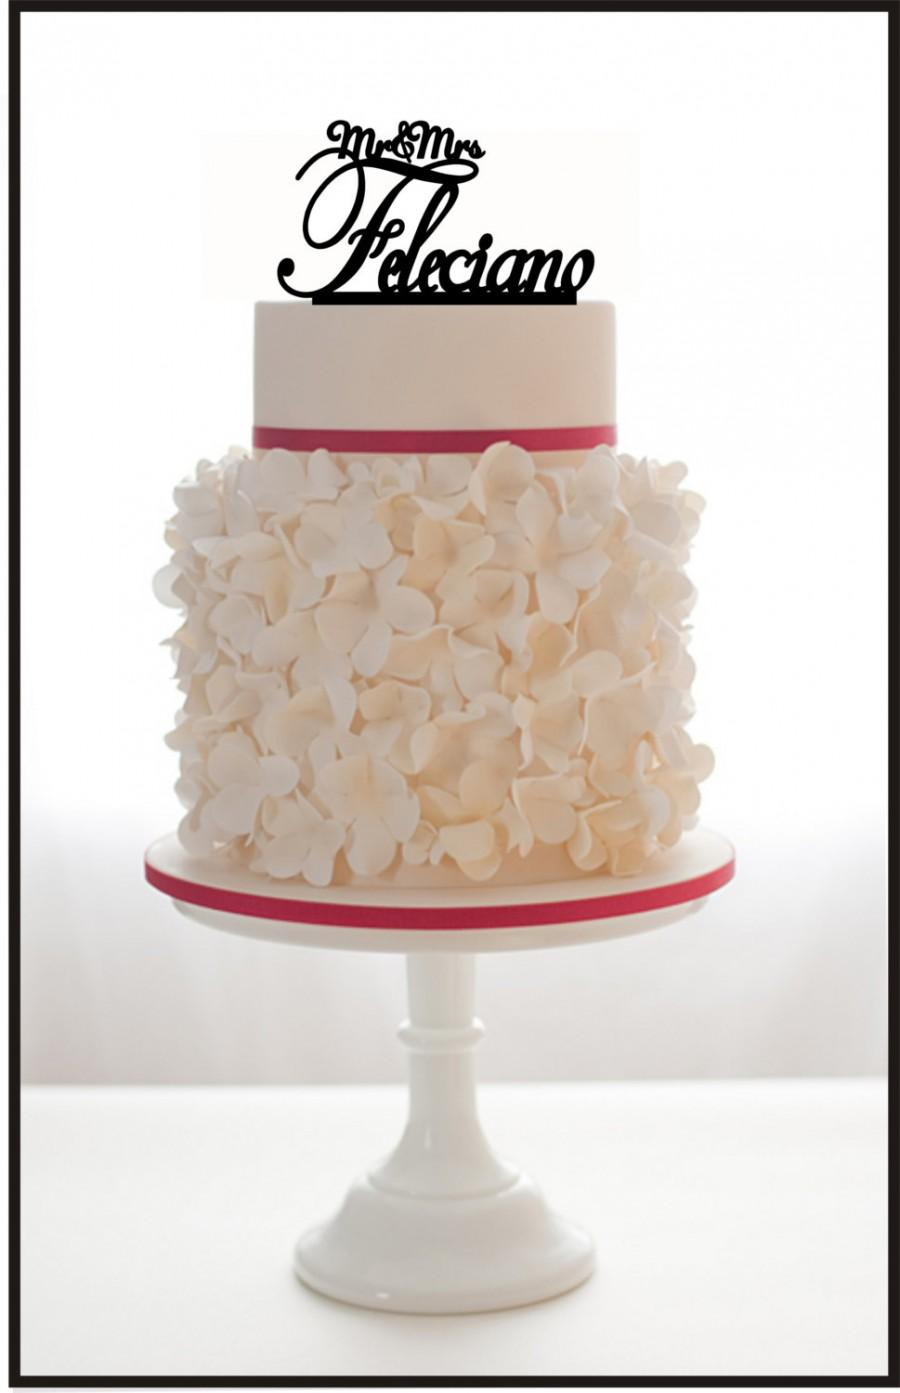 Wedding - Custom Wedding Cake Topper Mr and Mrs with your LAST NAME, choice of color and a FREE base for display